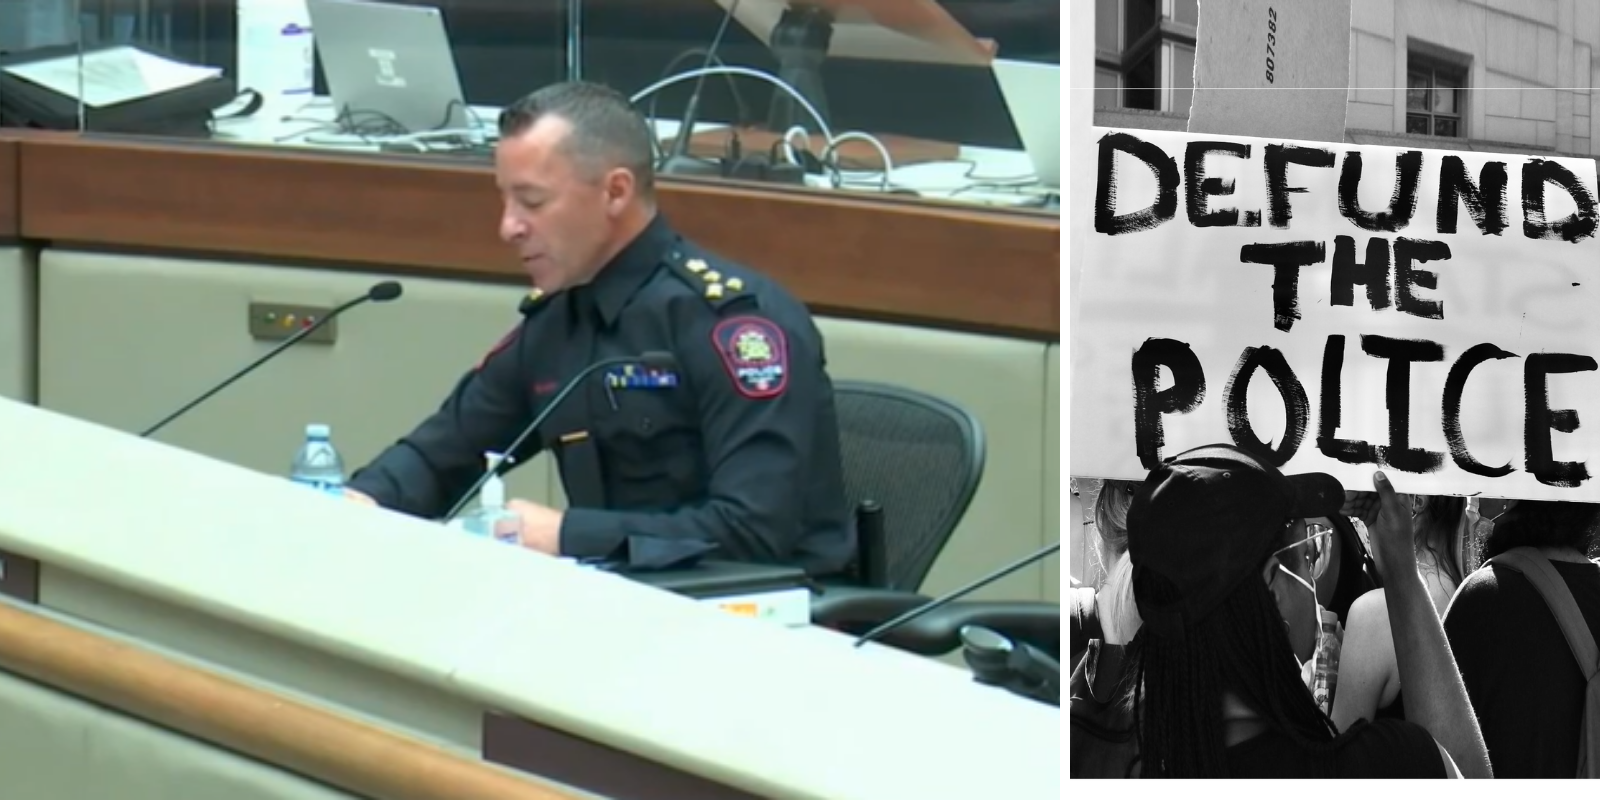 Calgary Police Chief changes stance, now believes in defunding police